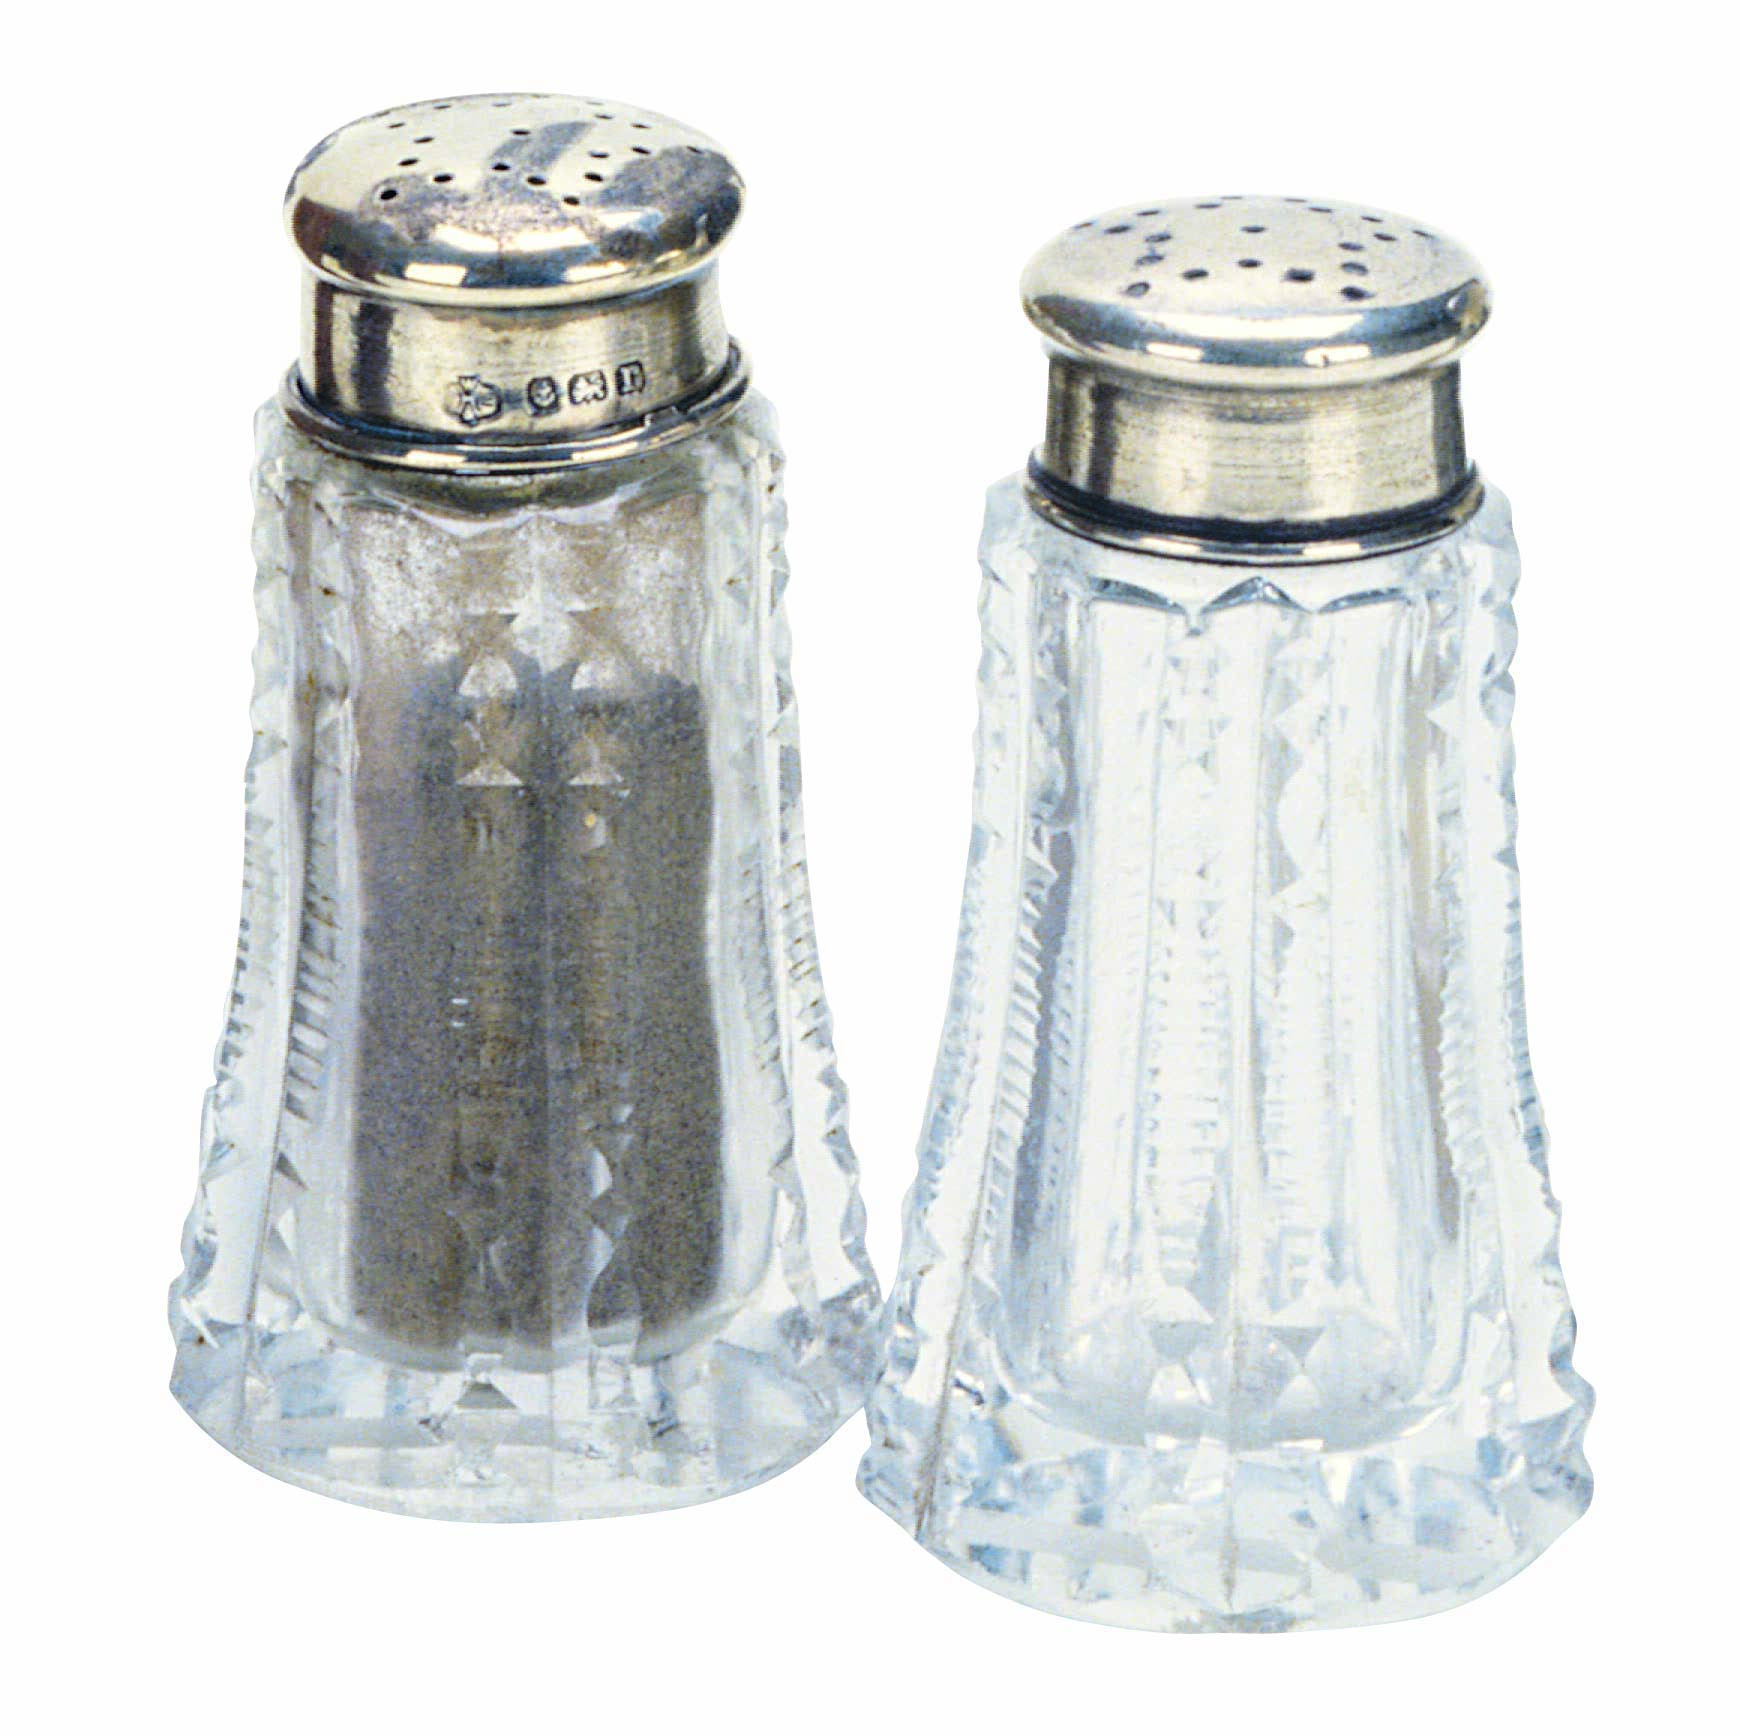 The Strange Table World of Salt and Pepper Shakers